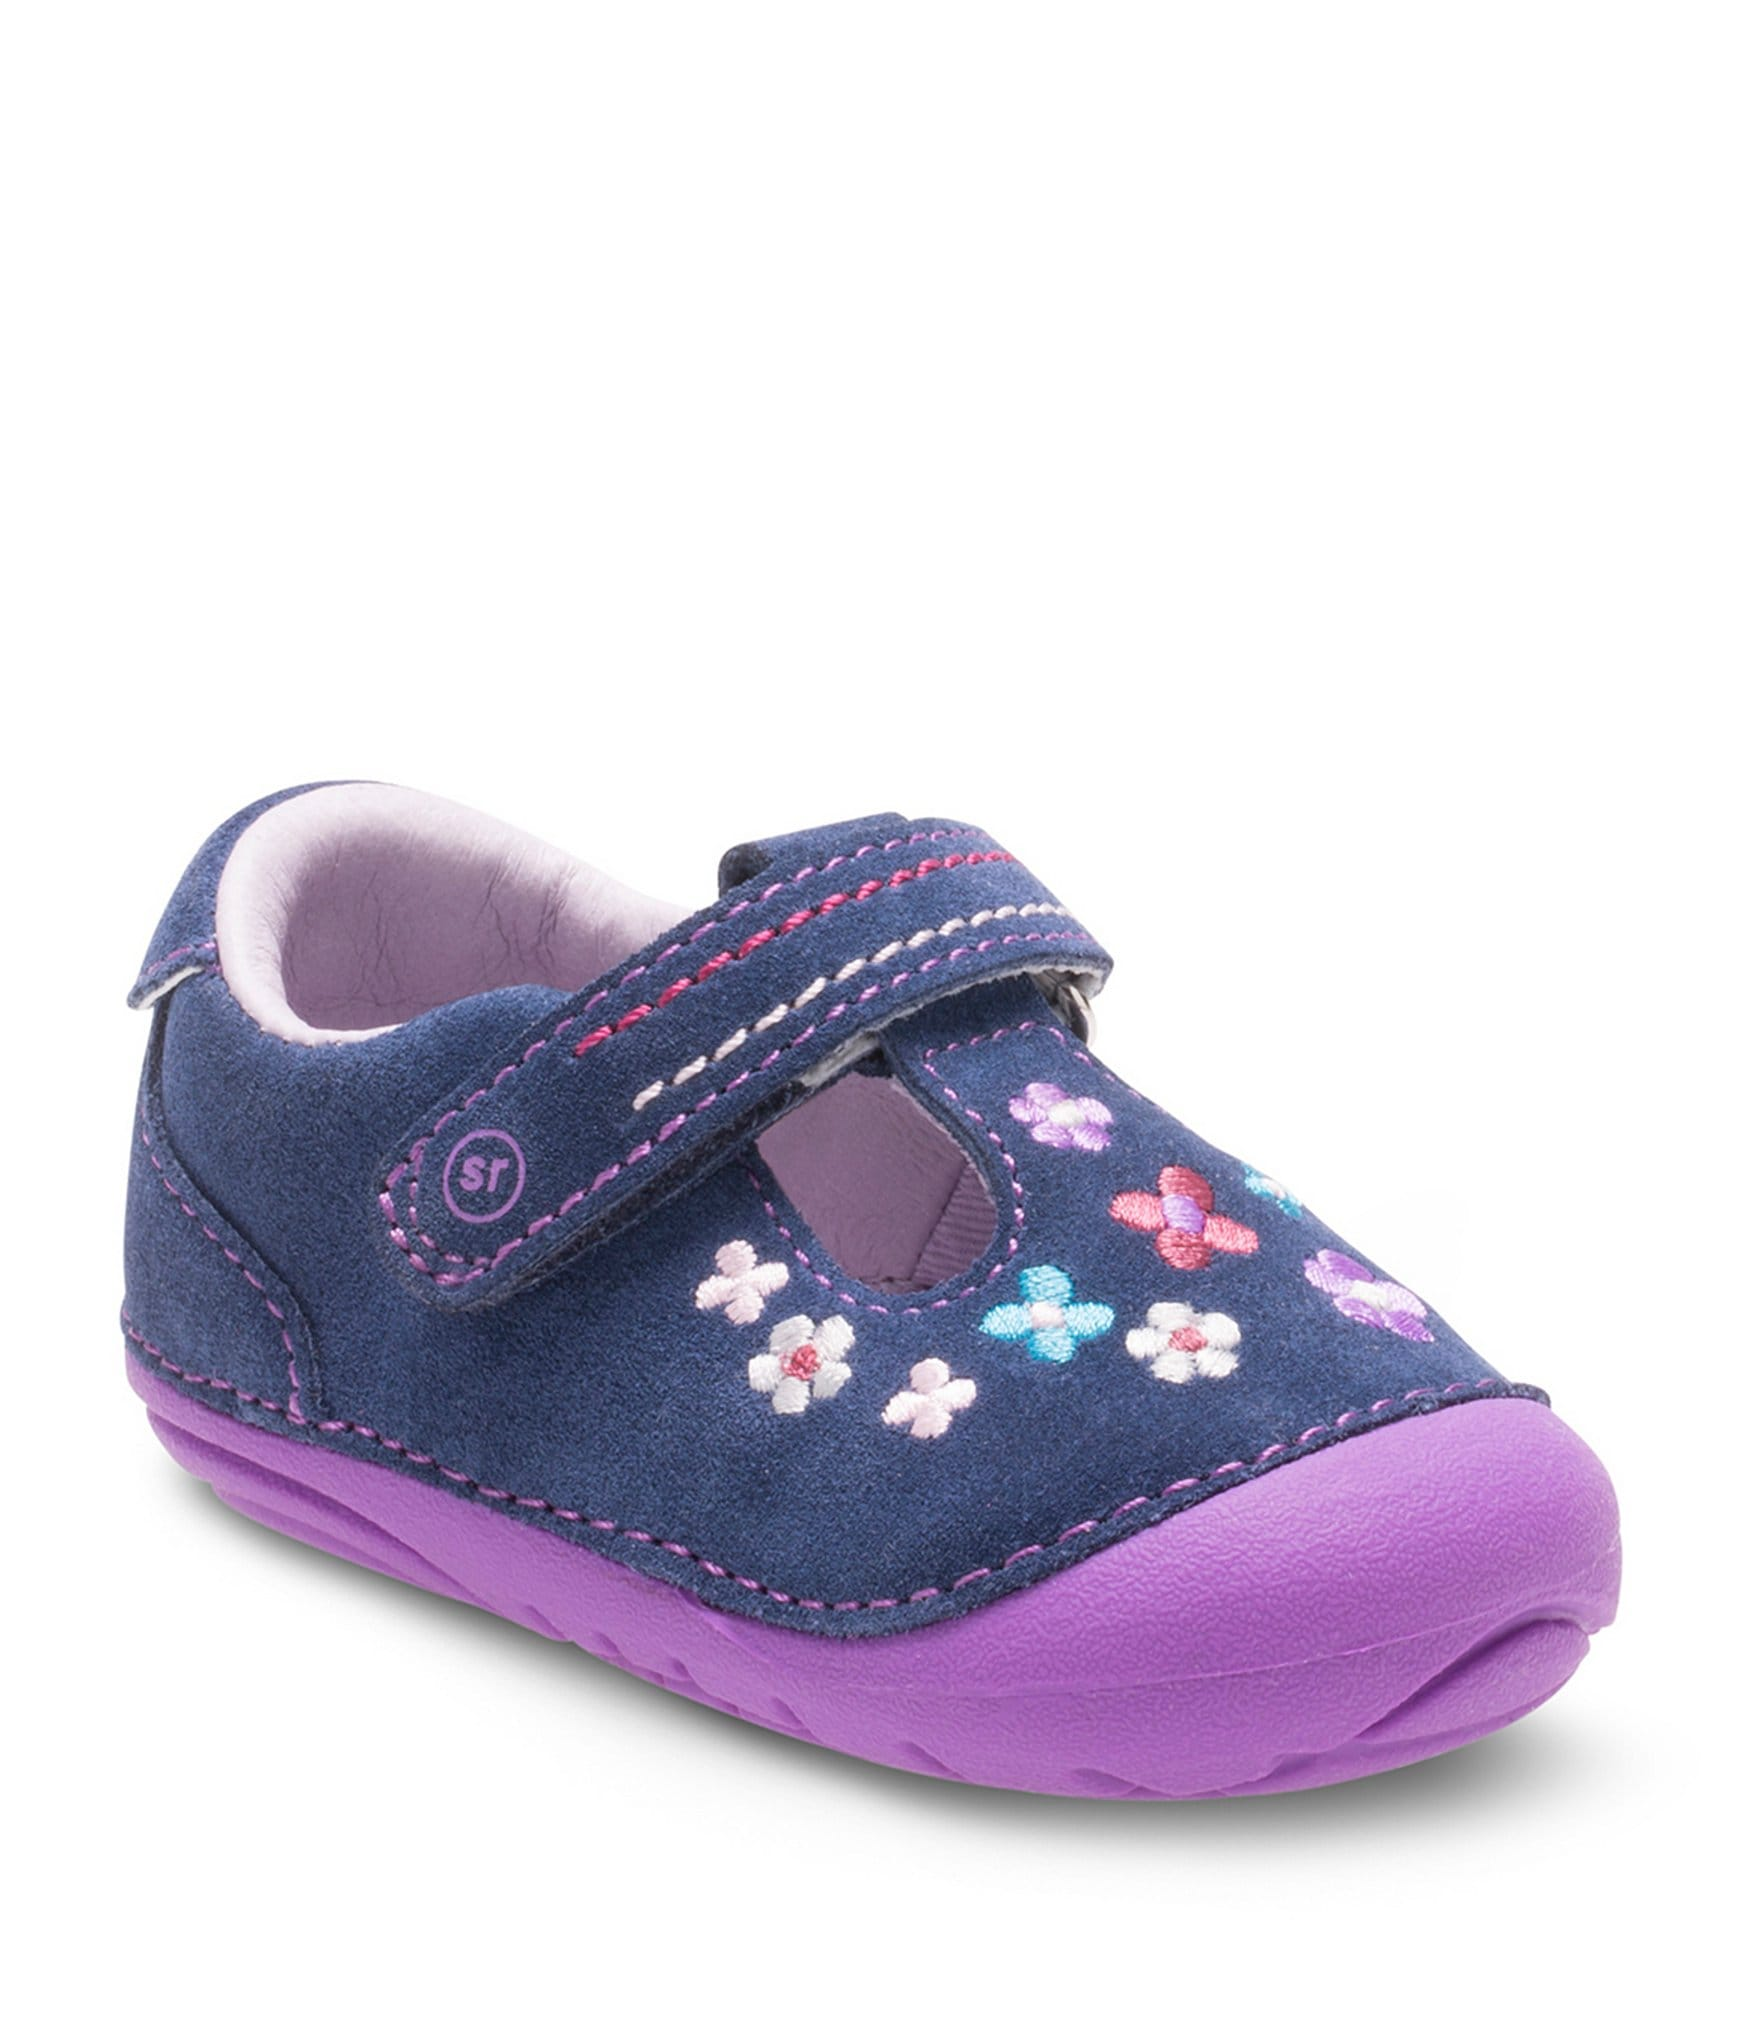 Stride Rite Girls Tonia T Strap Shoes